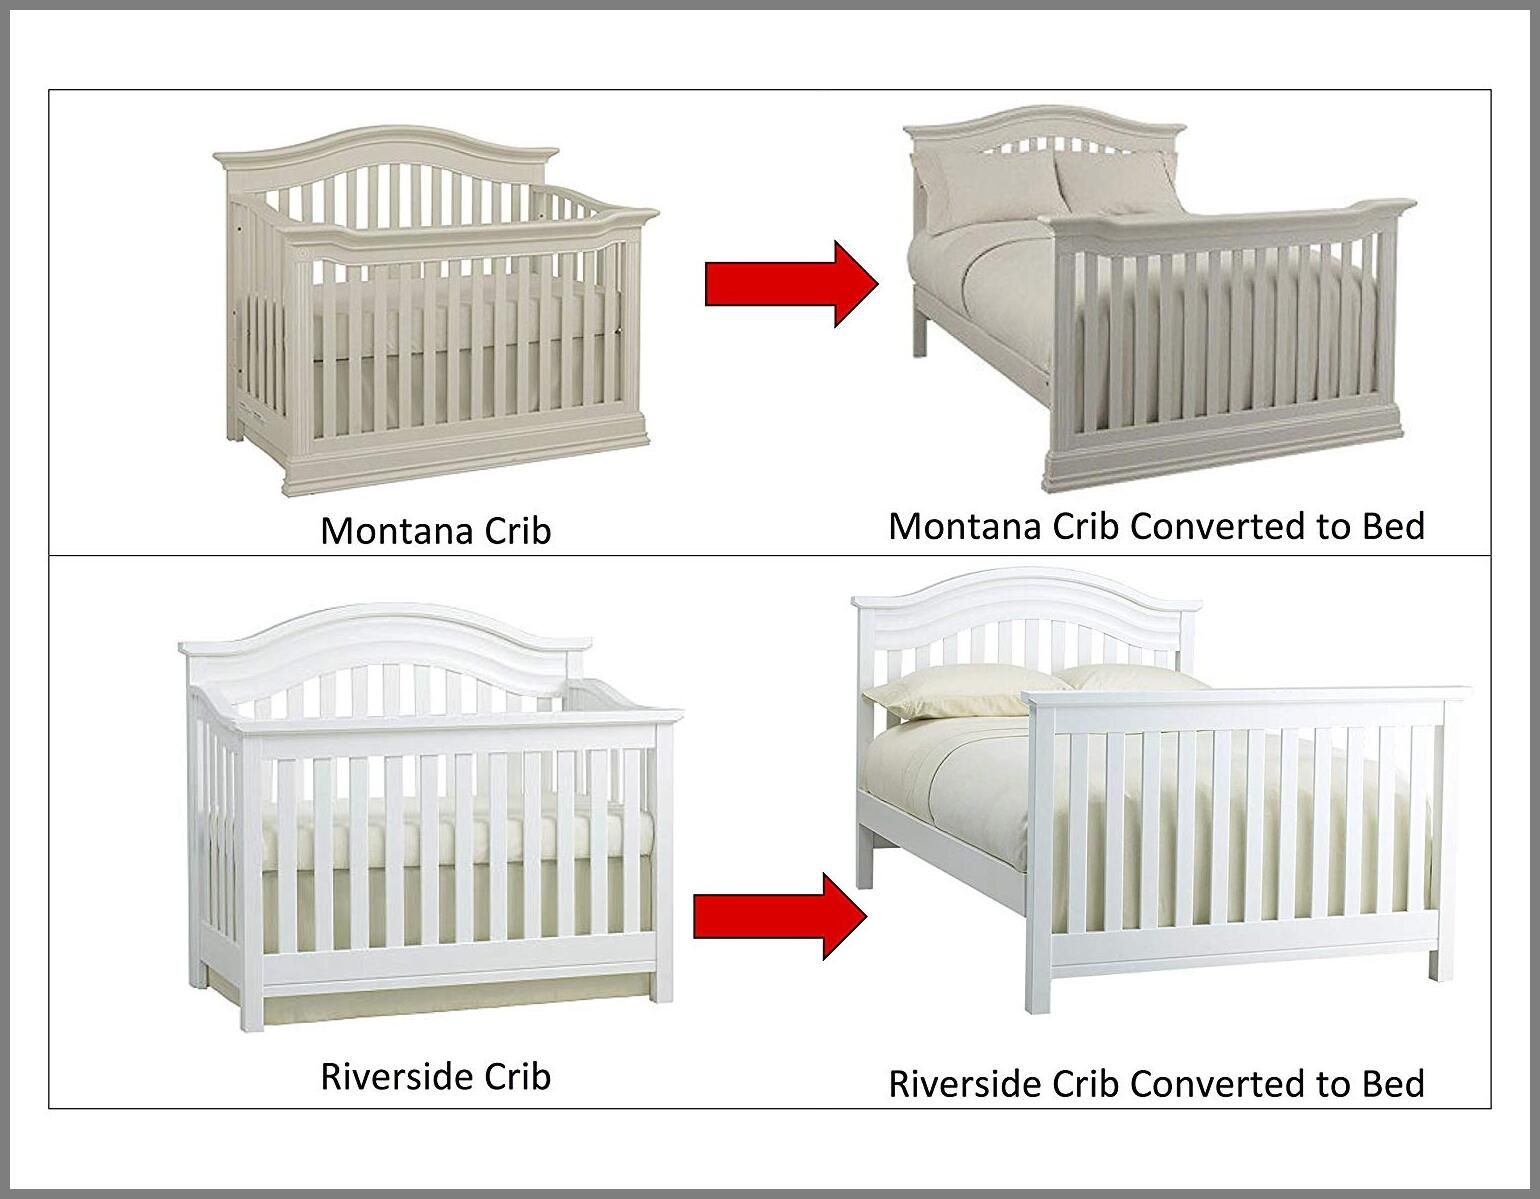 86 Reference Of Crib Mattress Vs Toddler Bed In 2020 Toddler Bed Mattress Crib Mattress Cribs